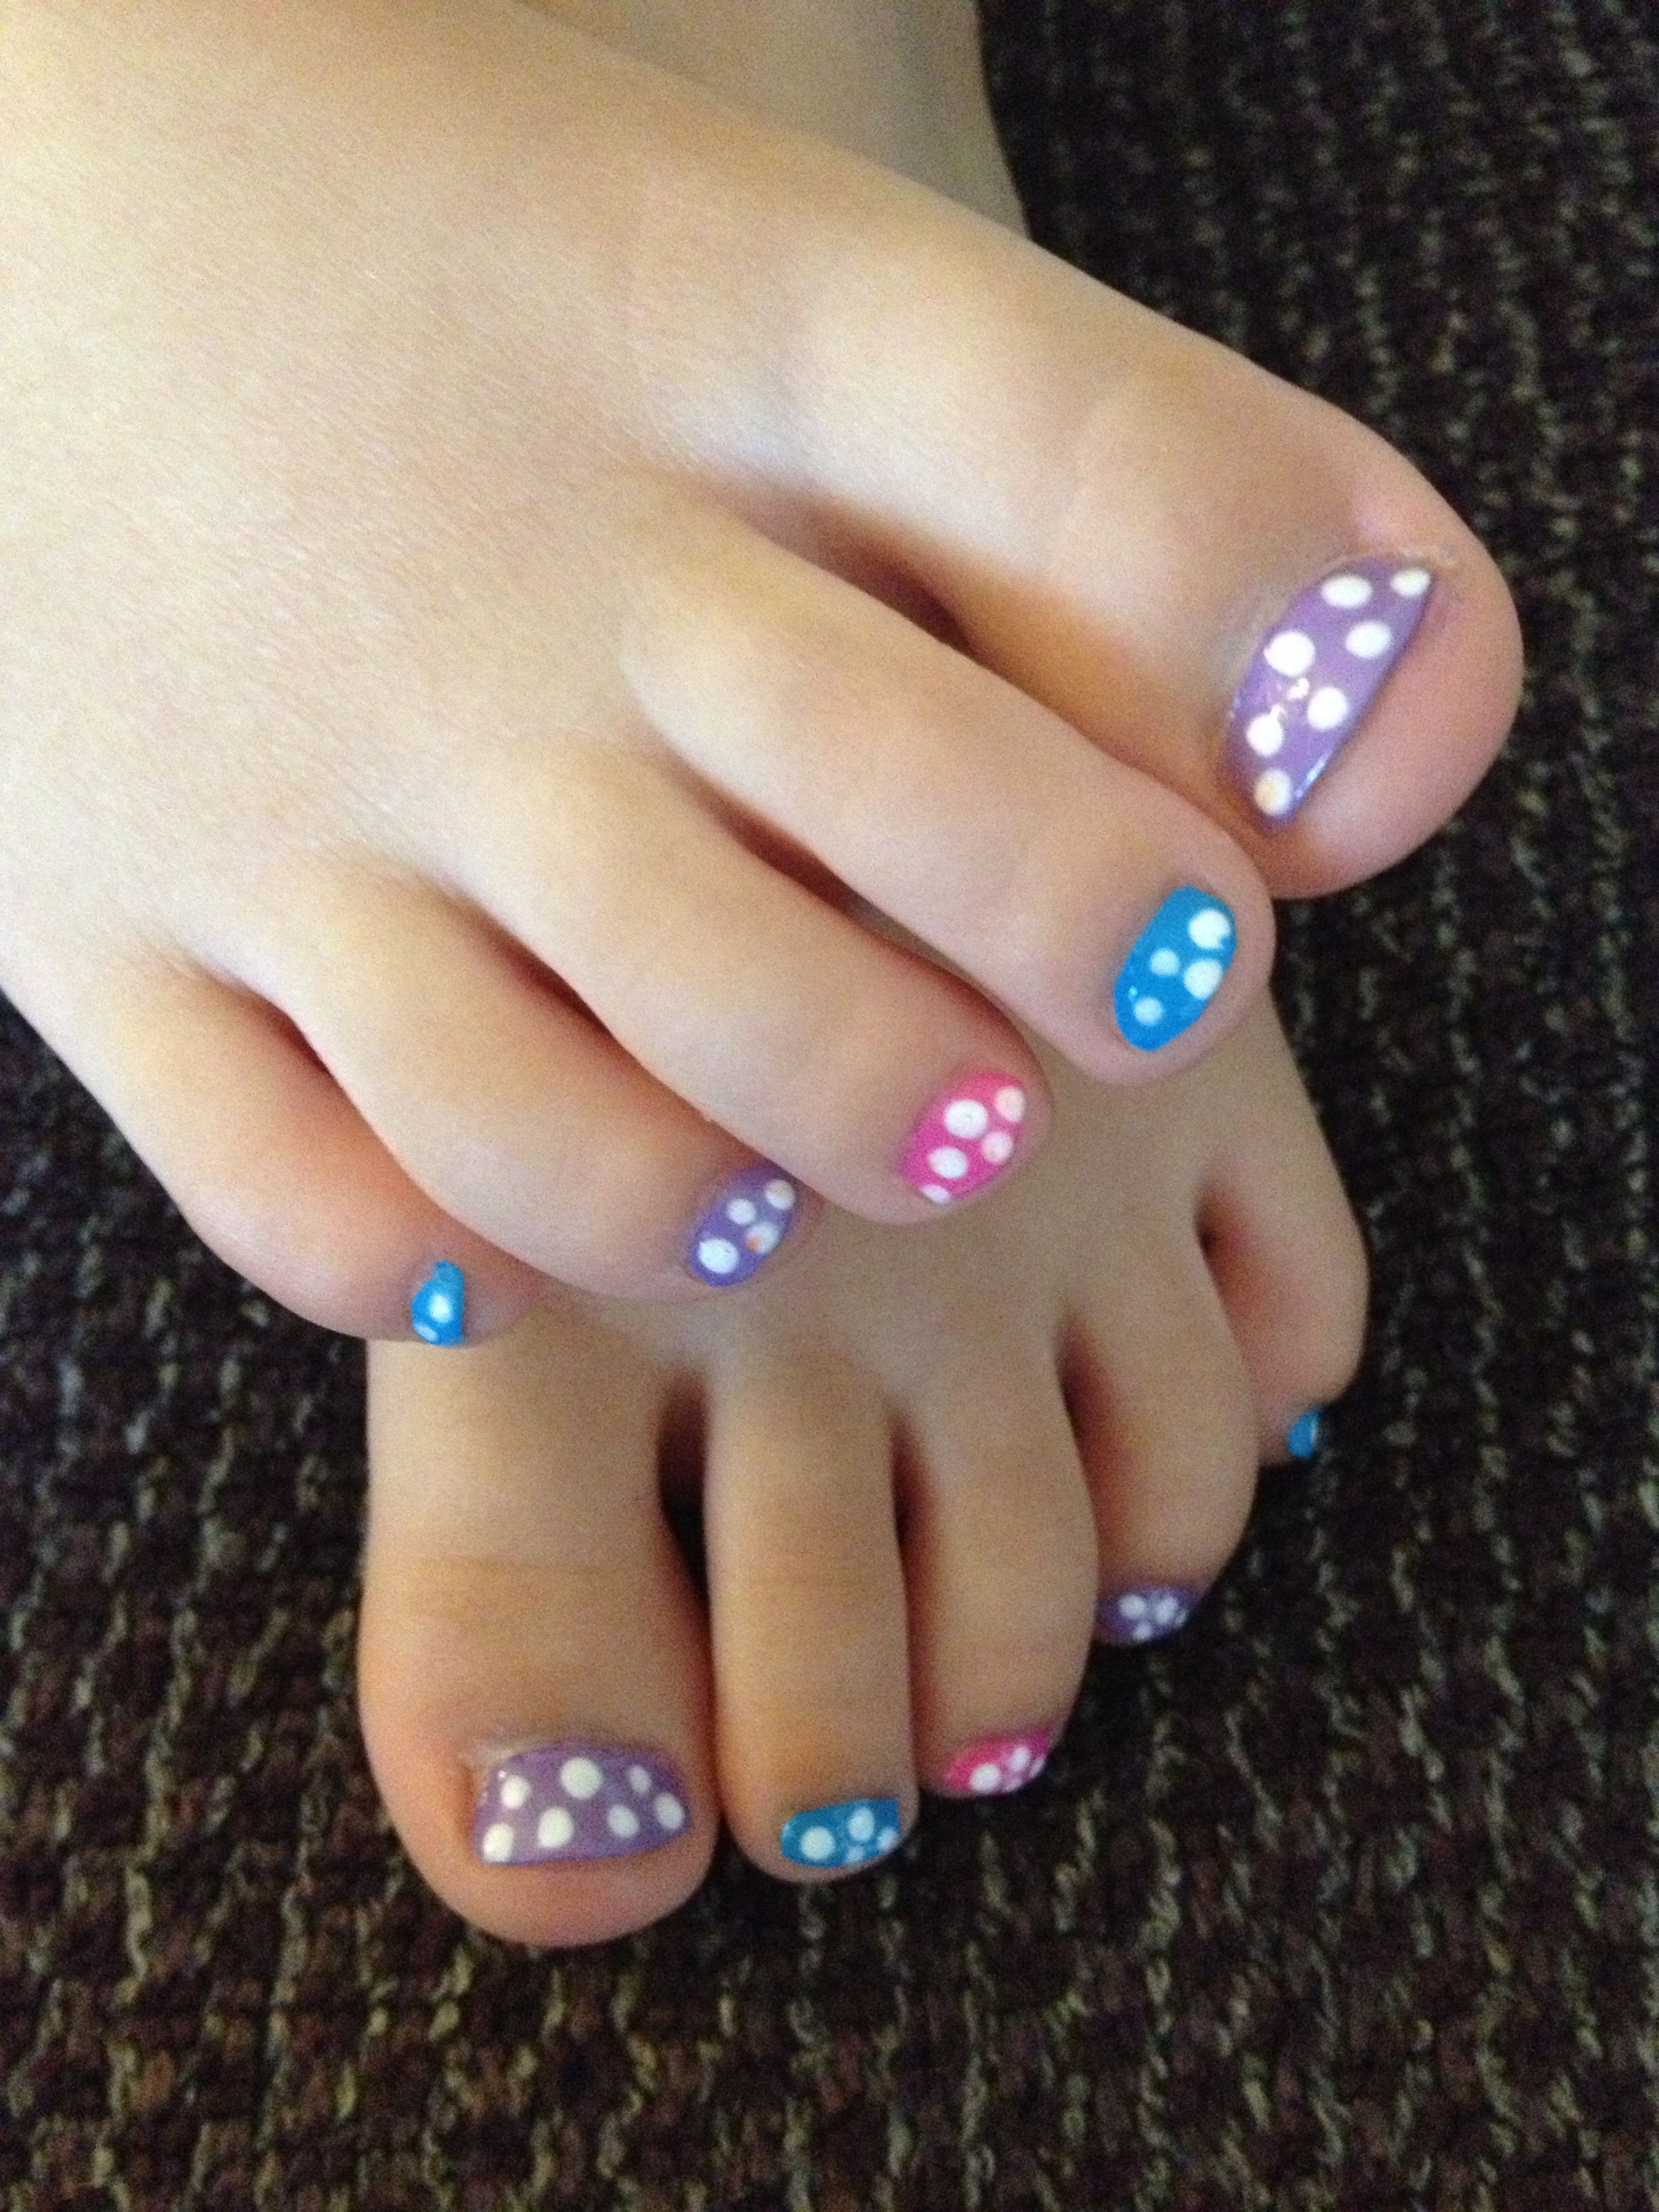 Cute Nails For My Girls Little Girl Nails Baby Girl Nails Pink Toe Nails